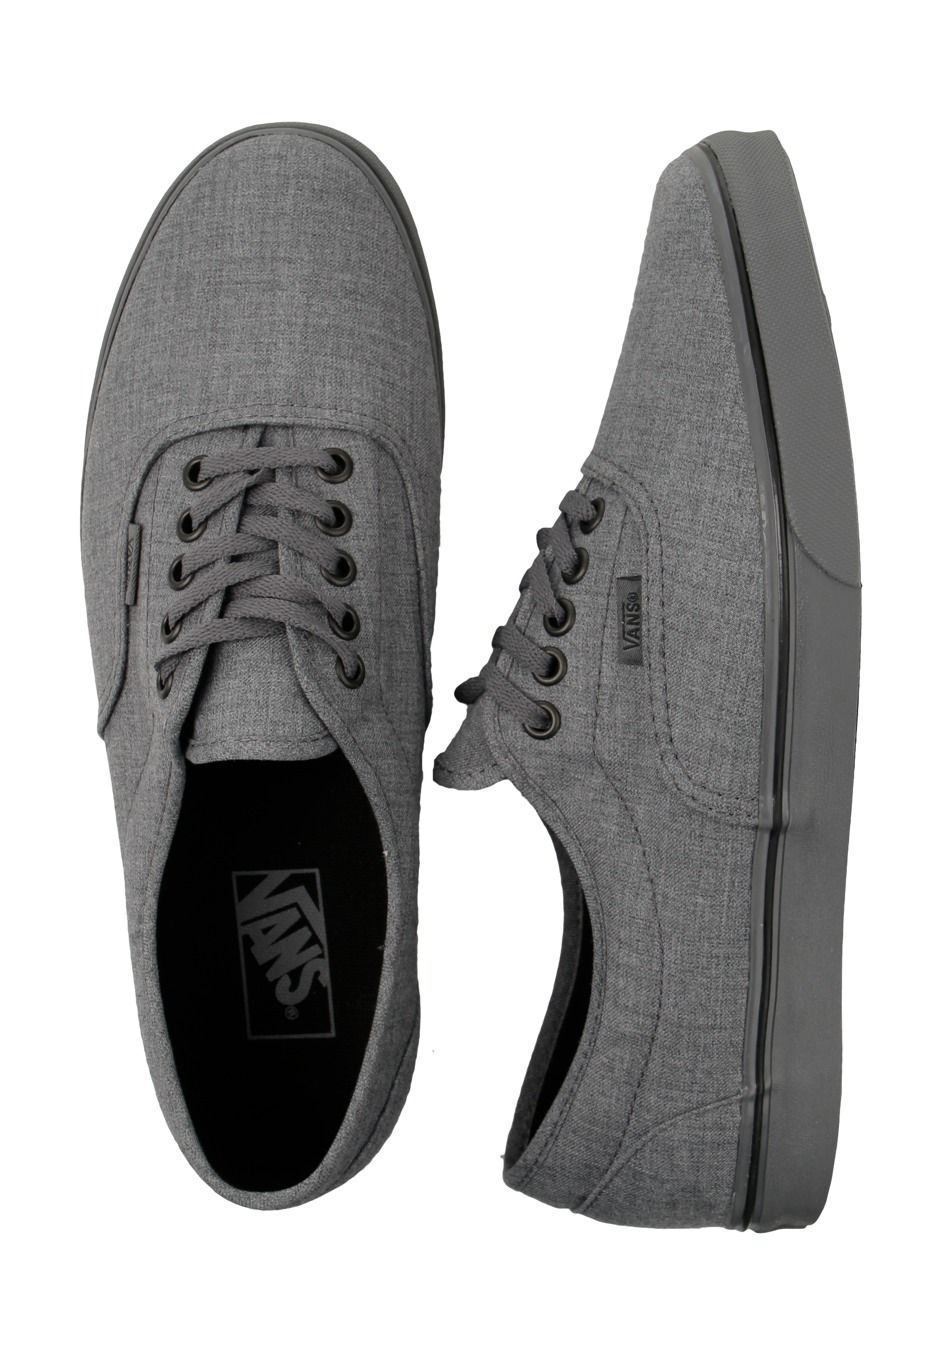 lacing. the latest addition to my vans collection. vans dressed up LPE shoe  in smoked pearl gray 6af89008d